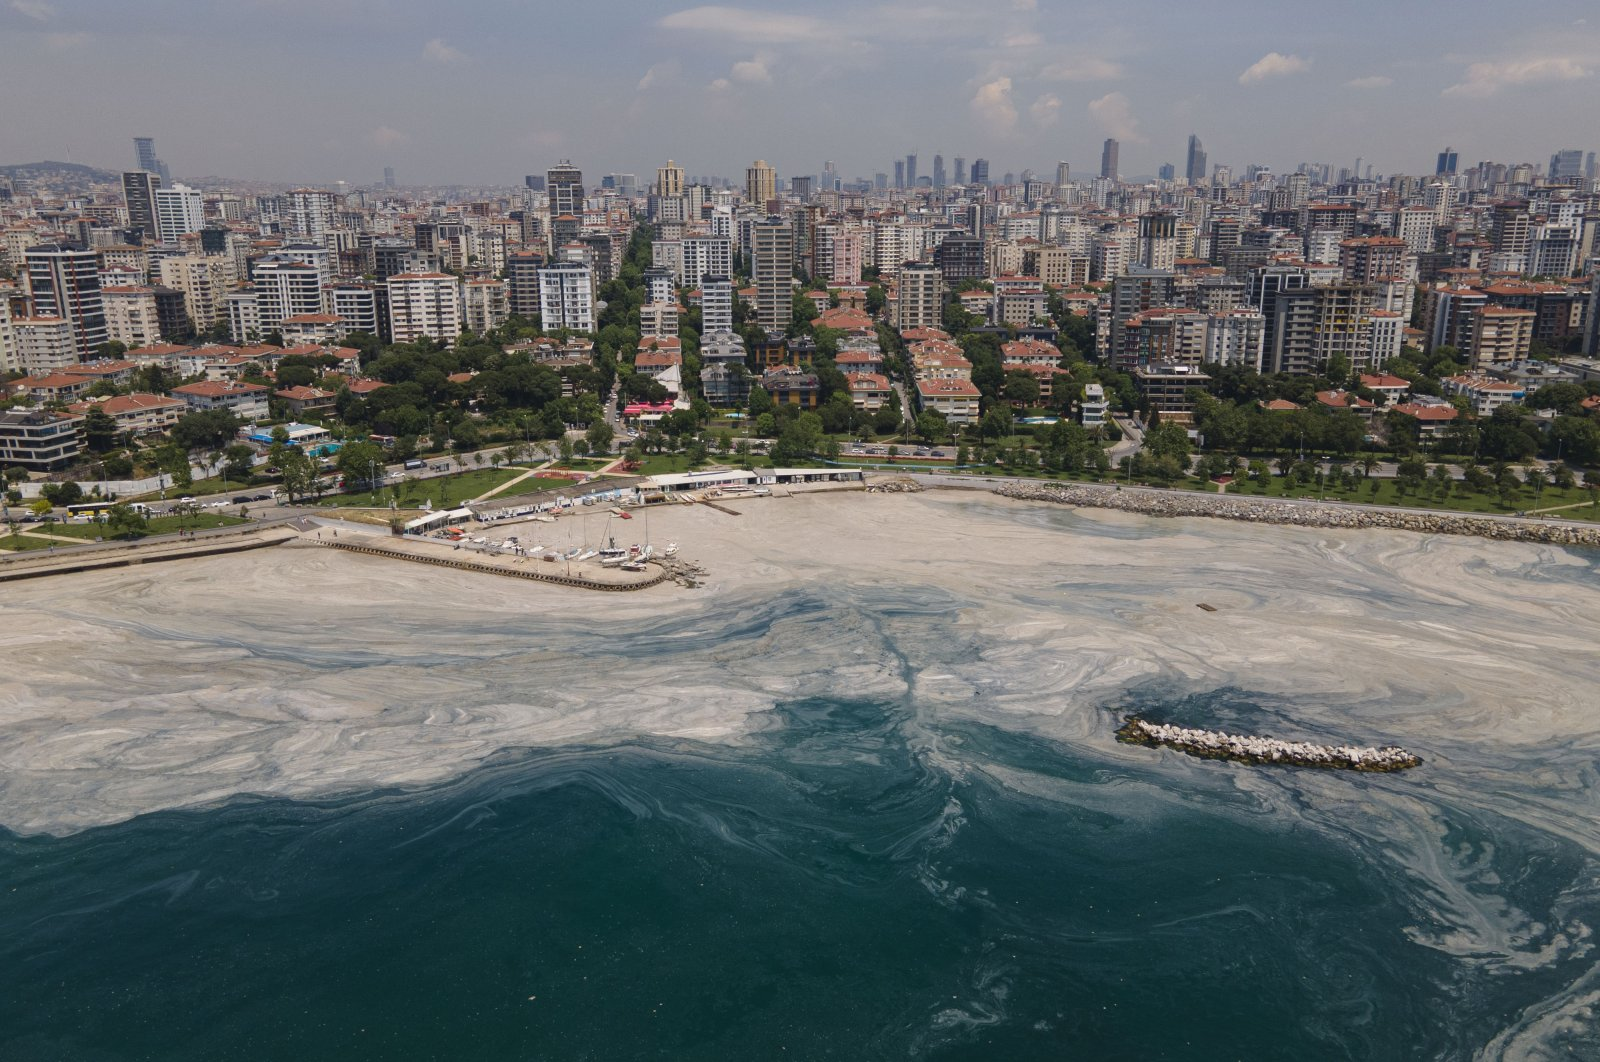 A huge mass of marine mucilage, a thick, slimy substance made up of compounds released by marine organisms, coagulates in the Marmara Sea off the Caddebostan shore, on the  Asian side of Istanbul, Turkey, June 7, 2021. (AP Photo)